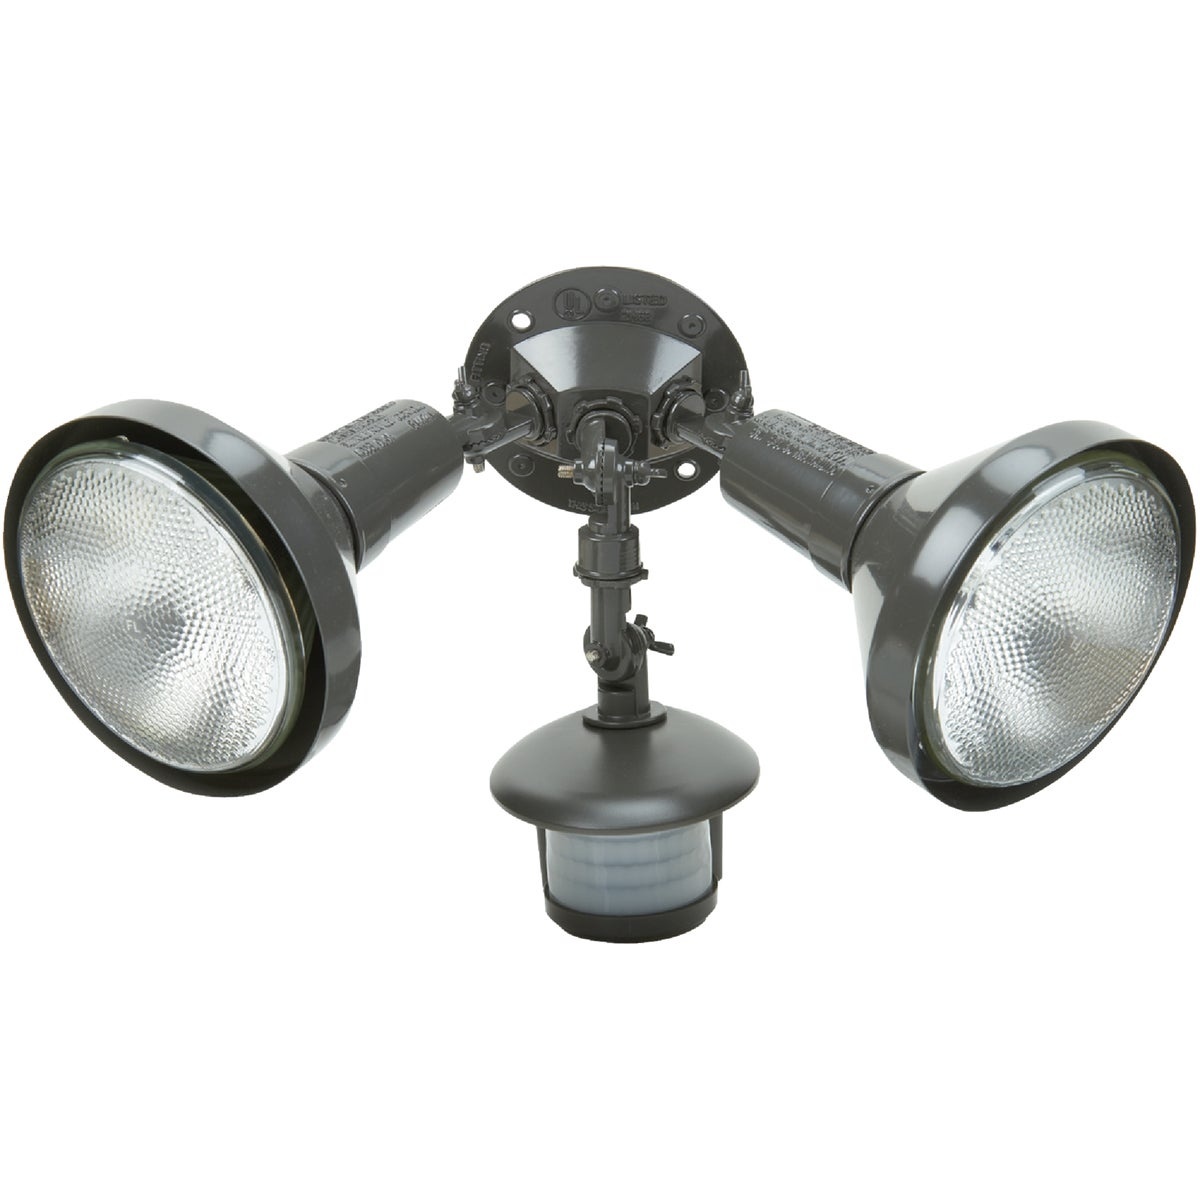 BRZ MOTION FIXTURE W/CVR - ED269B by Do it Best